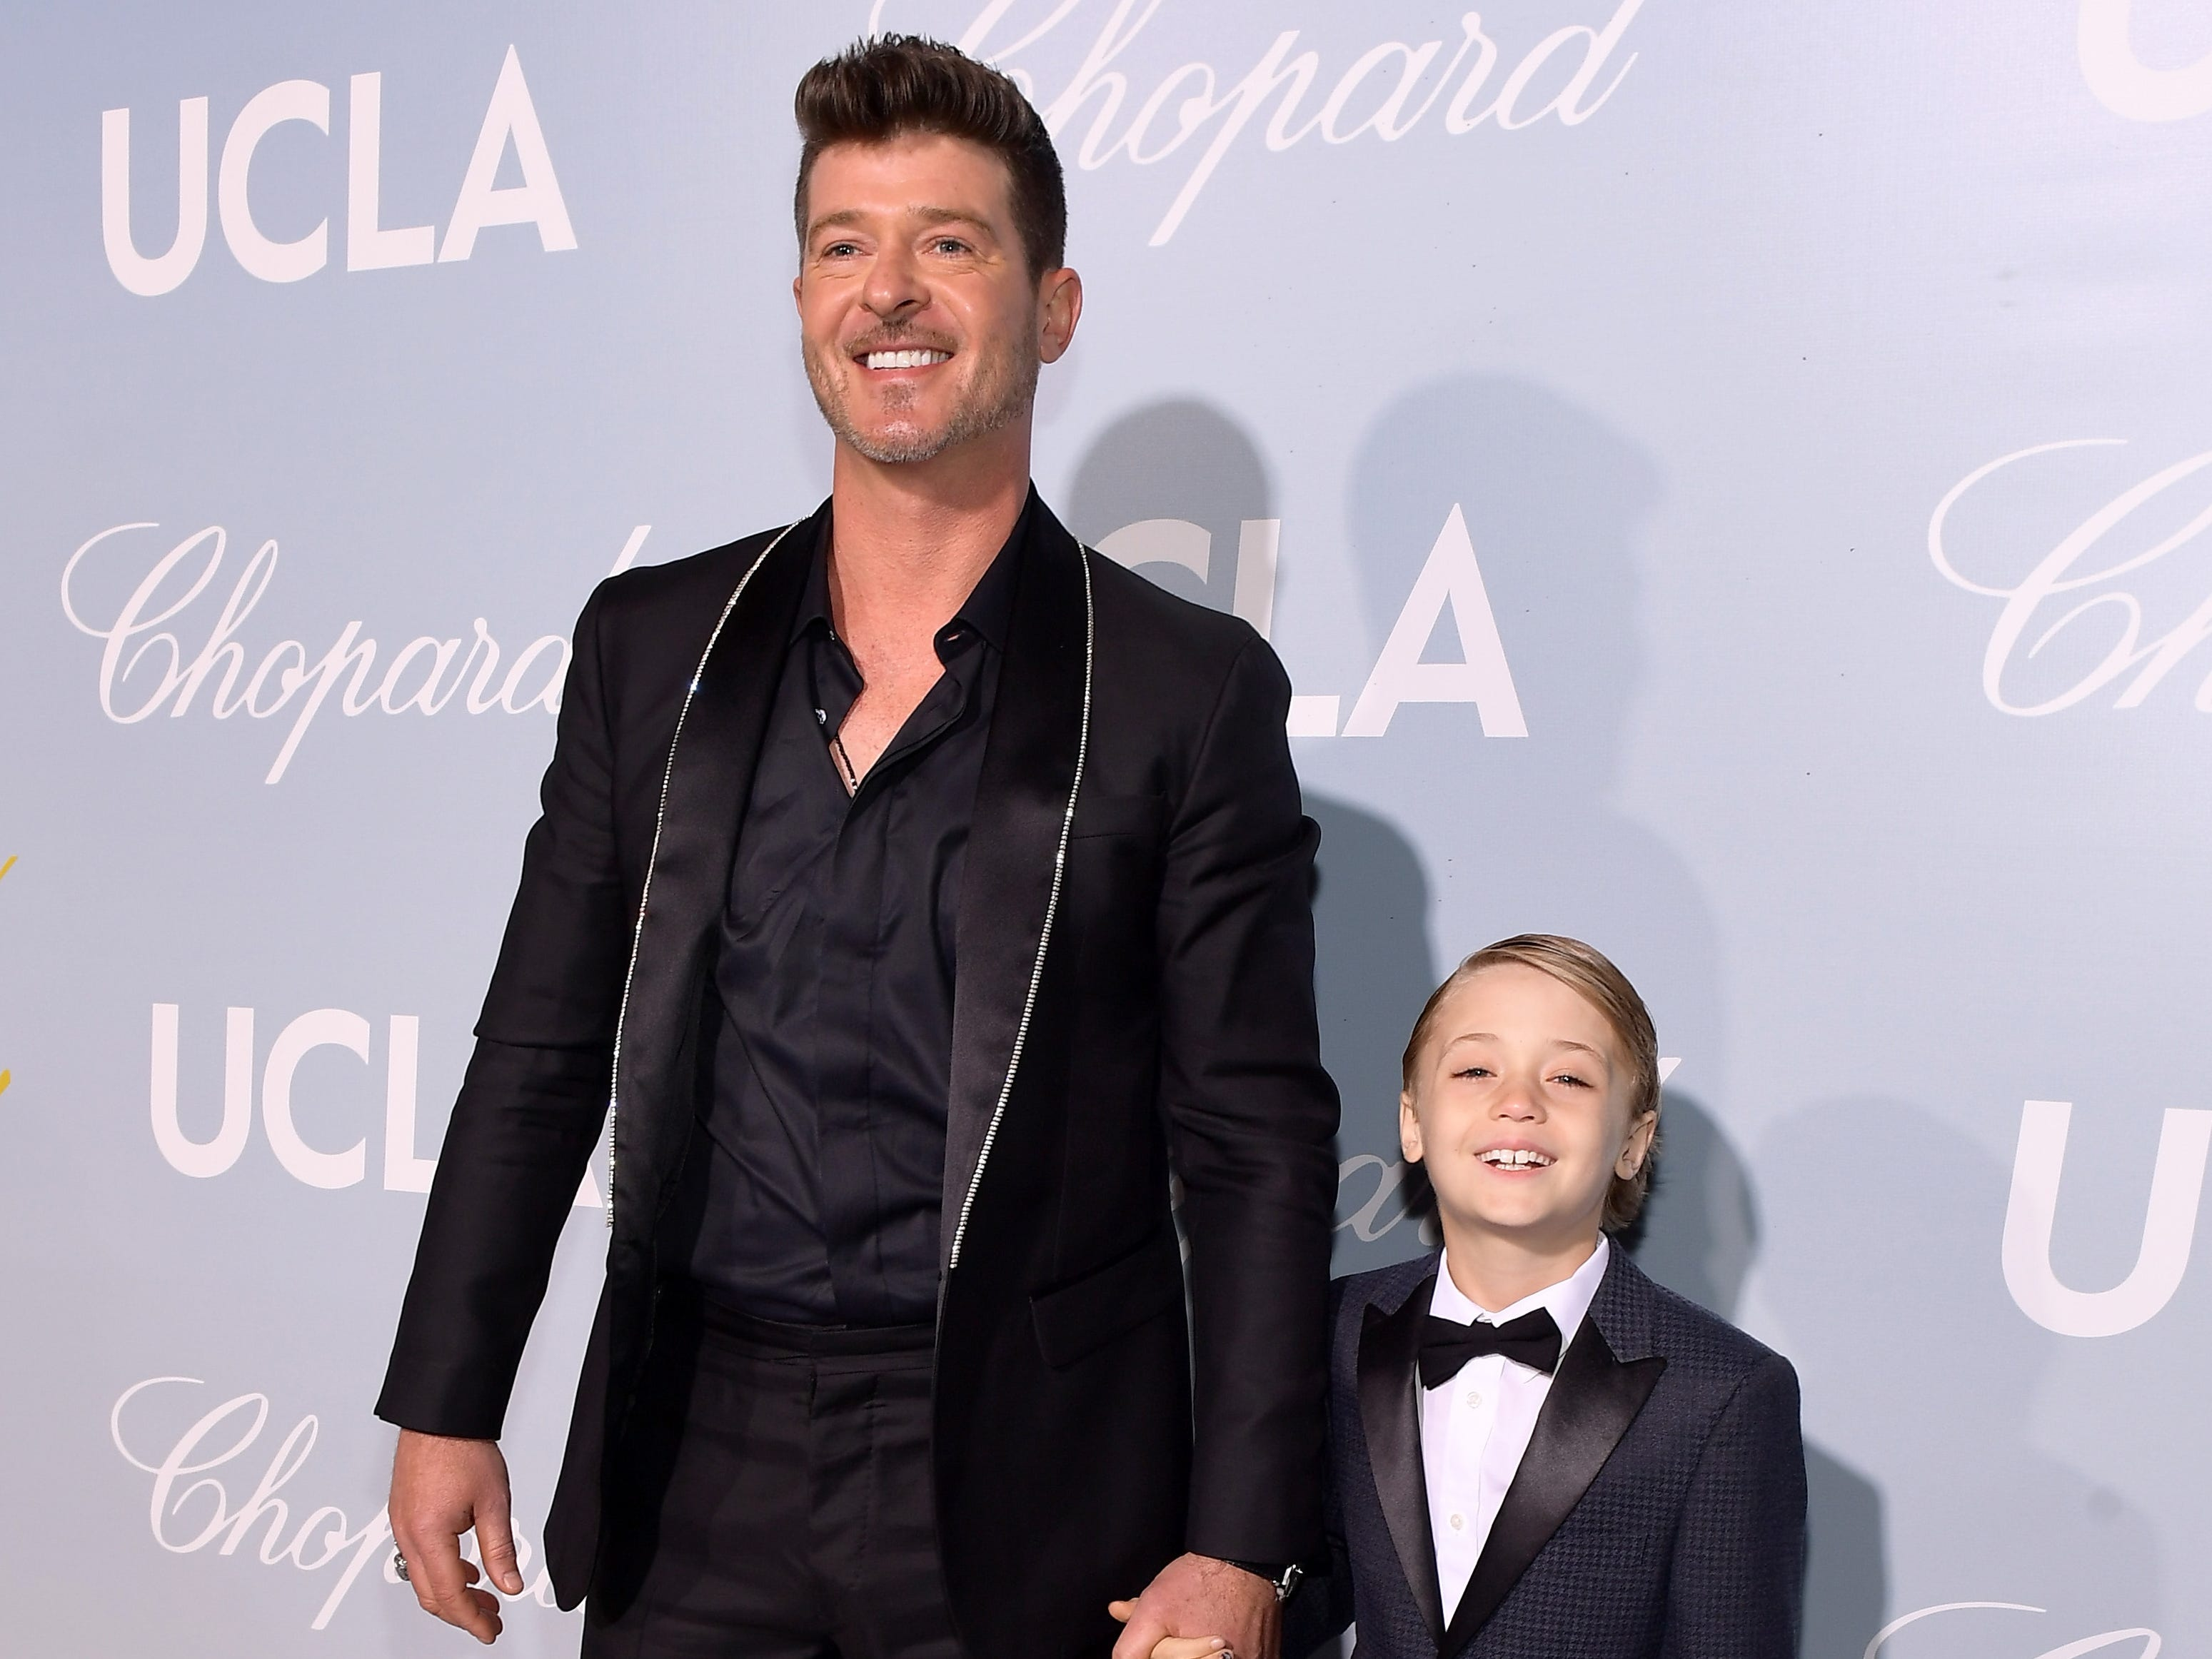 BEVERLY HILLS, CA - FEBRUARY 21:  Robin Thicke and guest attend the UCLA IoES honors Barbra Streisand and Gisele Bundchen at the 2019 Hollywood for Science Gala on February 21, 2019 in Beverly Hills, California.  (Photo by Matt Winkelmeyer/Getty Images for UCLA Institute of the Environment & Sustainability) ORG XMIT: 775301825 ORIG FILE ID: 1126664594